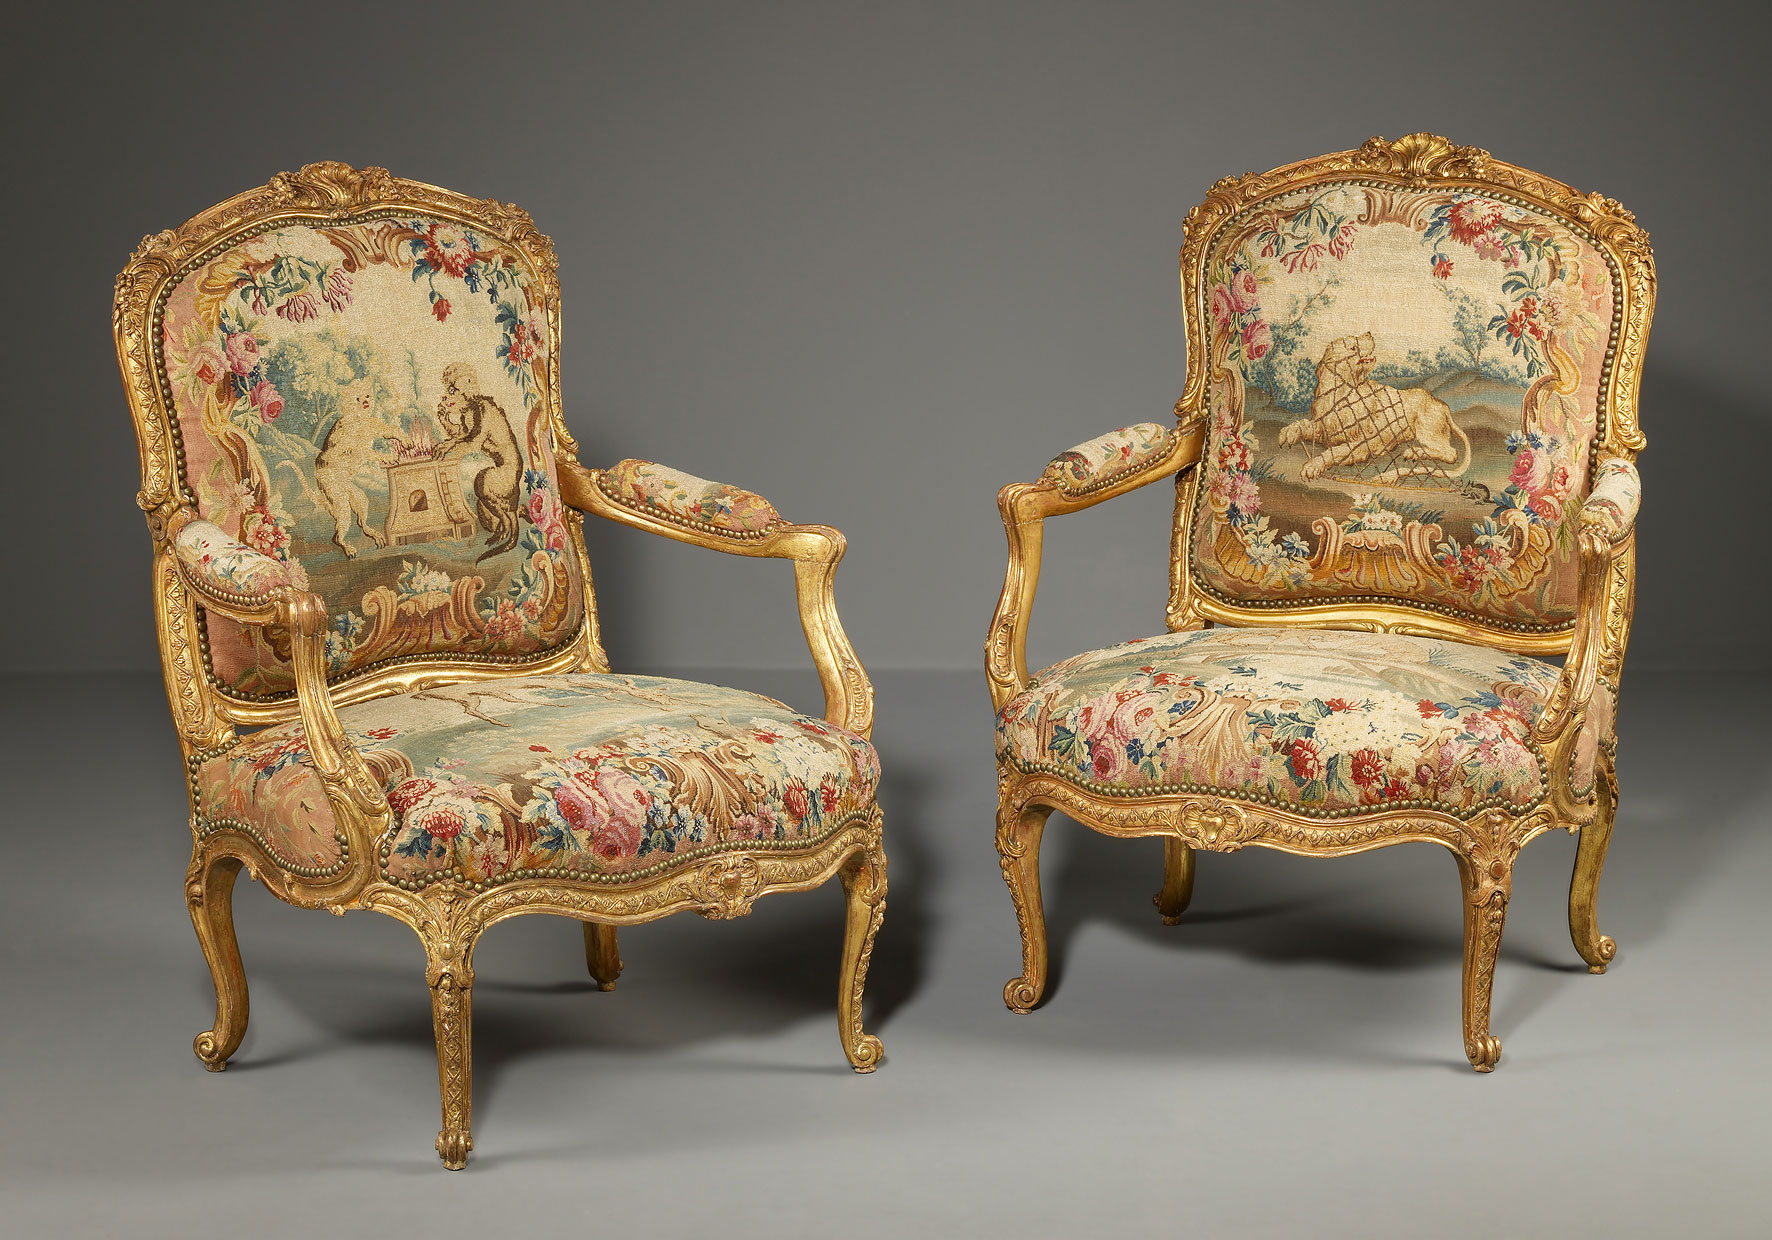 Pair Of Louis Xv Gilt Wood Armchairs From The Waterford Suite Jean Jacques Tilliard